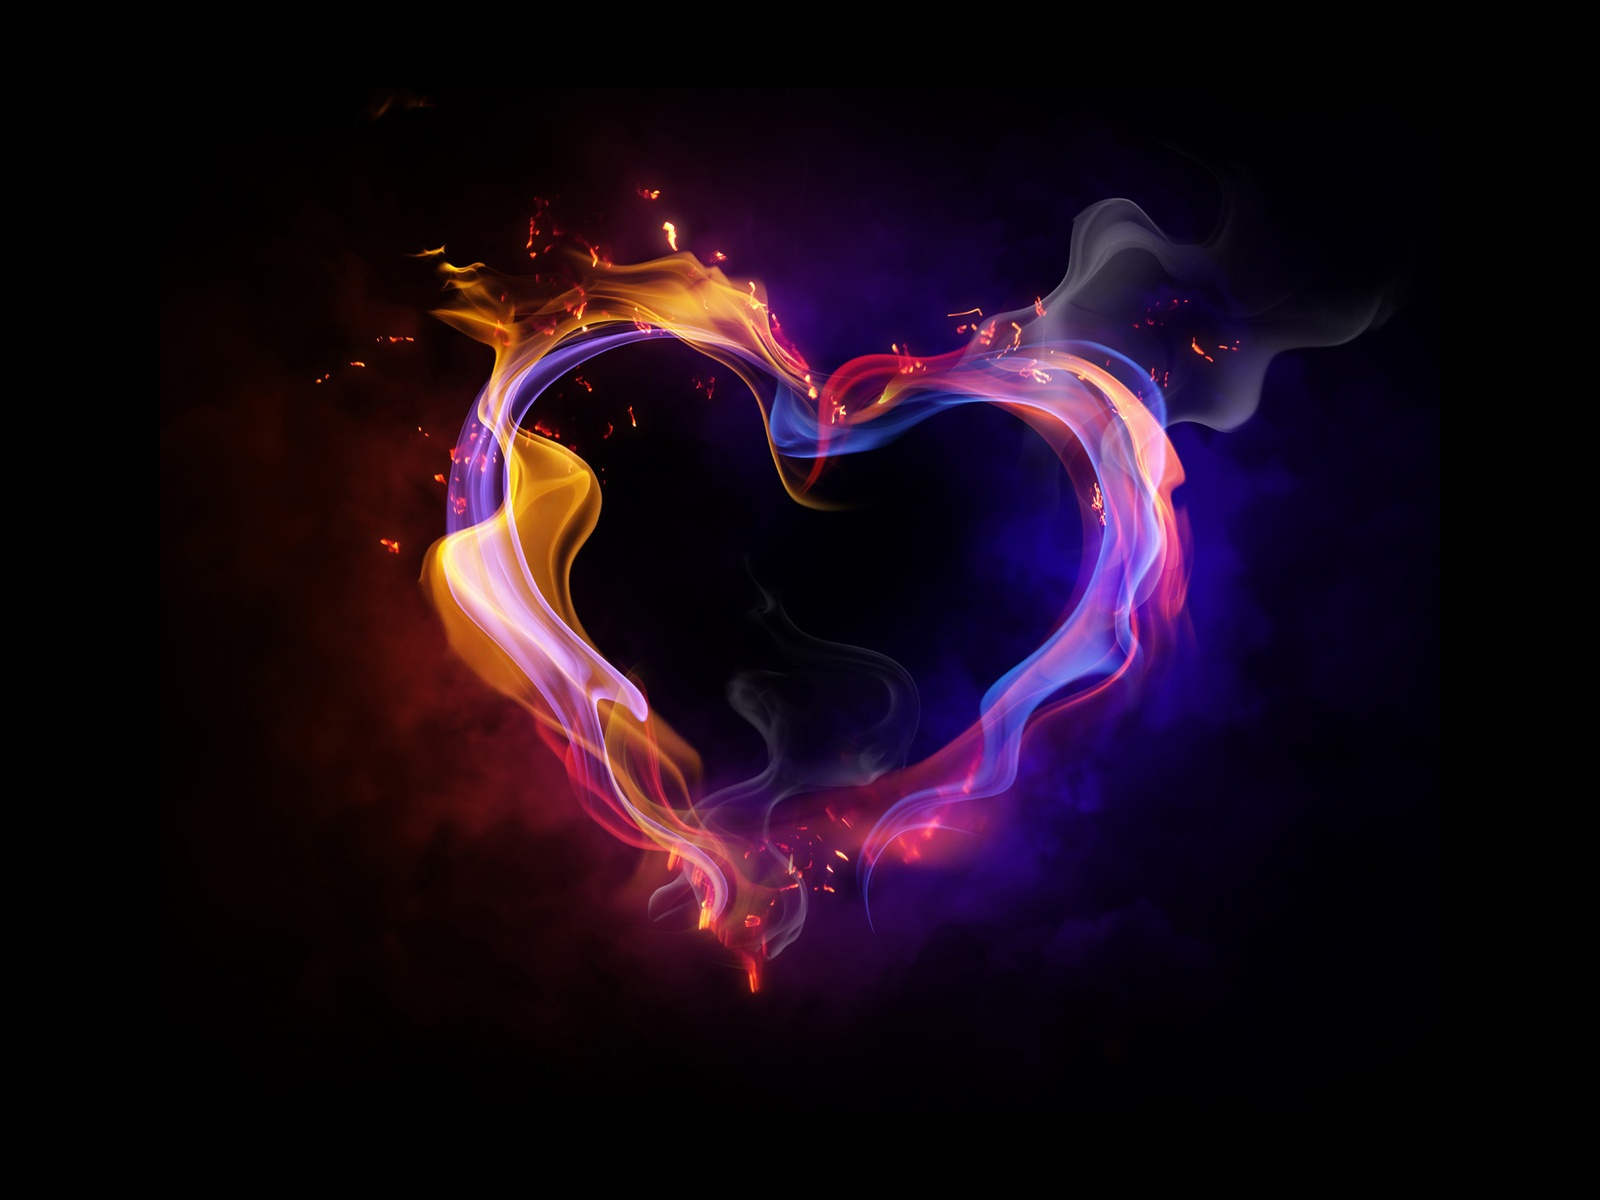 http://1.bp.blogspot.com/-4M65Jx9FO8E/UHmIkvFVszI/AAAAAAAAAXY/vo3tzmqgHic/s1600/Fire-Heart-Love-HD-Wallpaper.jpg